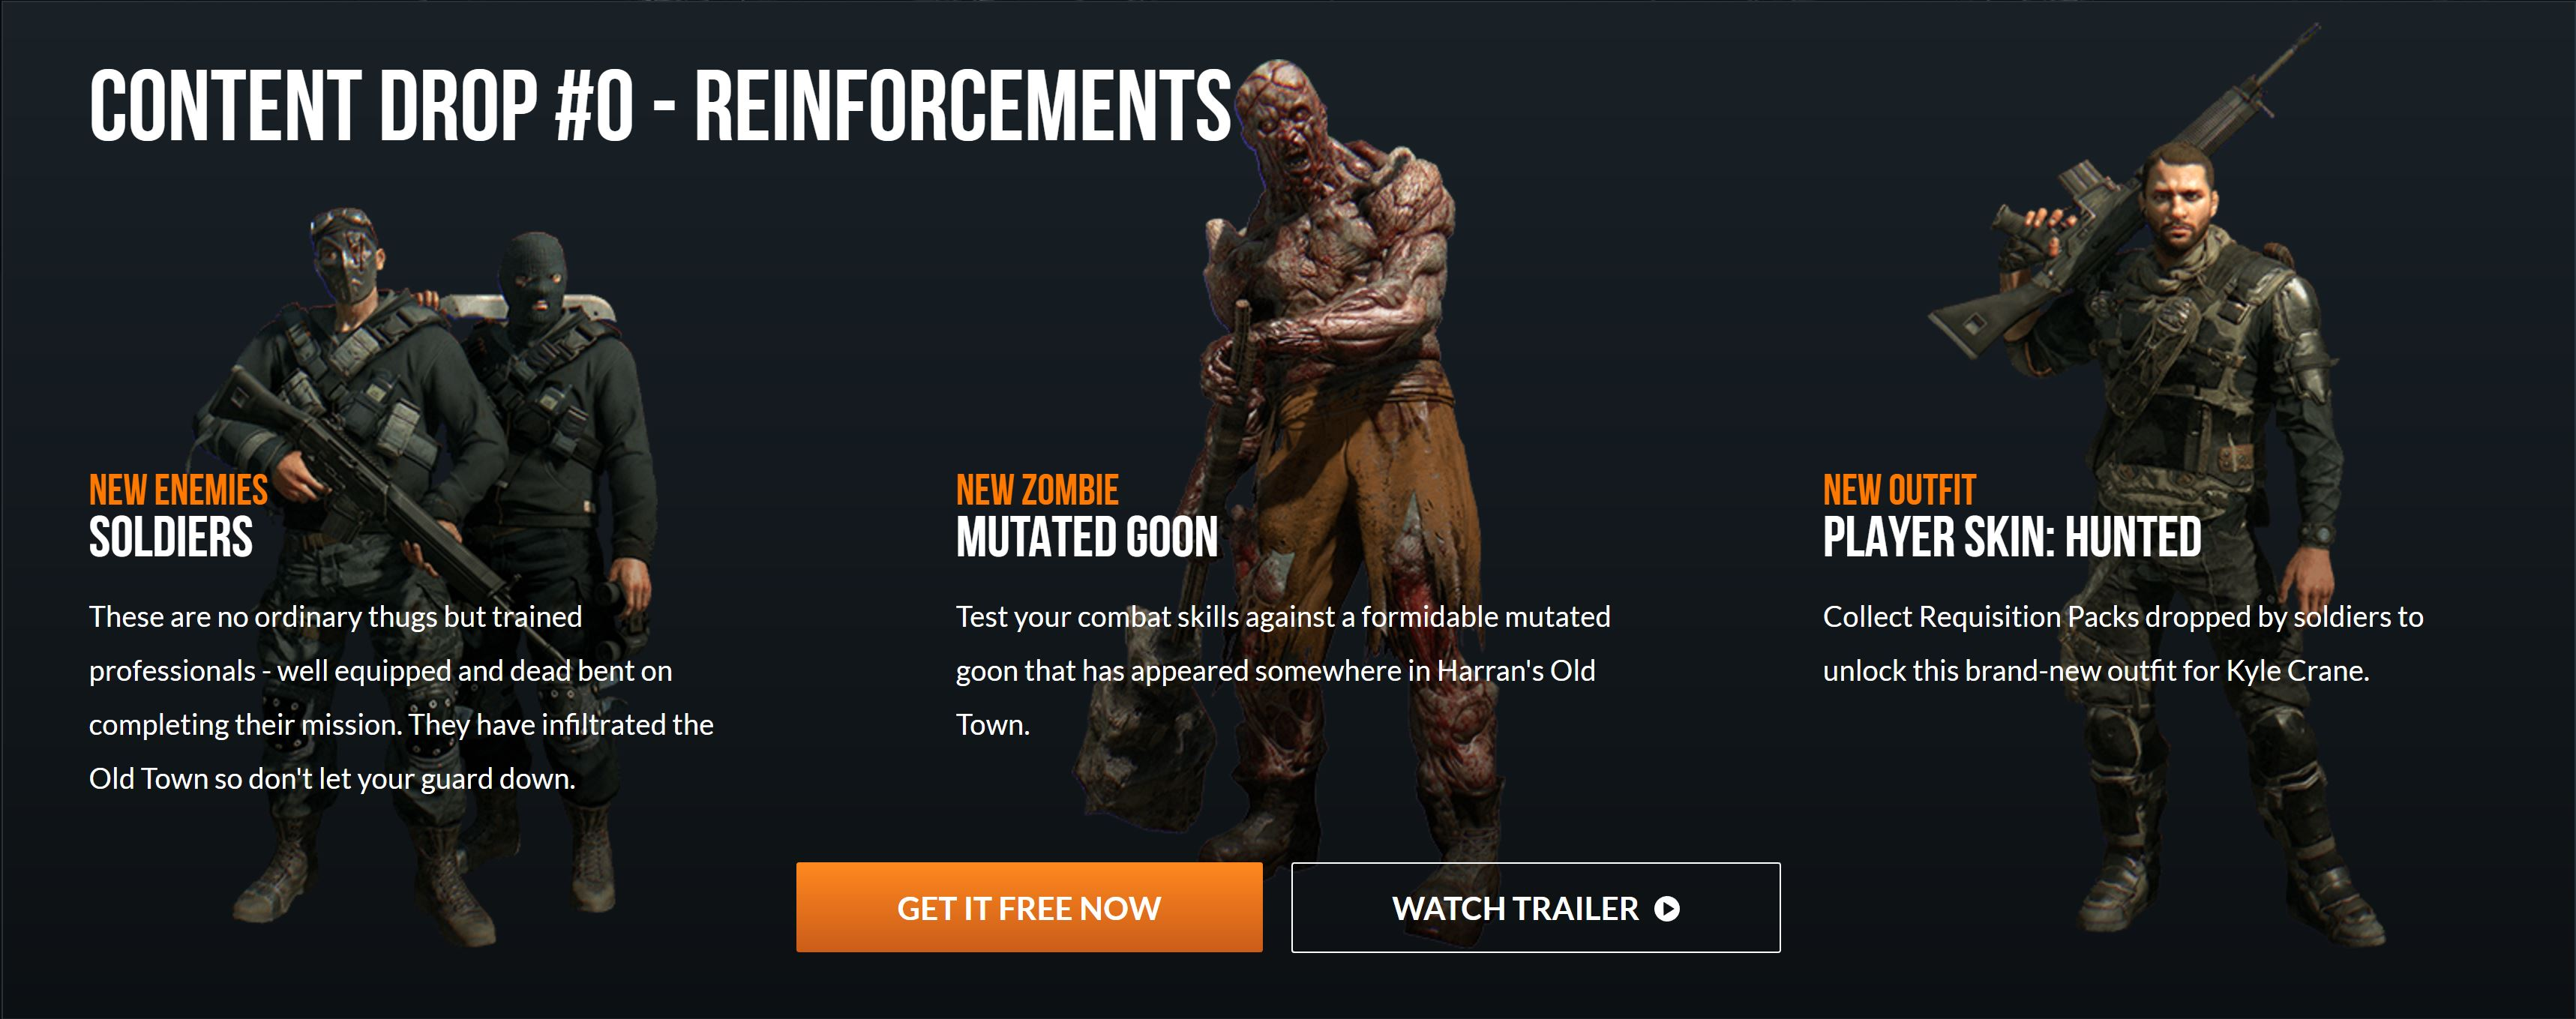 Dying Light - Content Drop 0